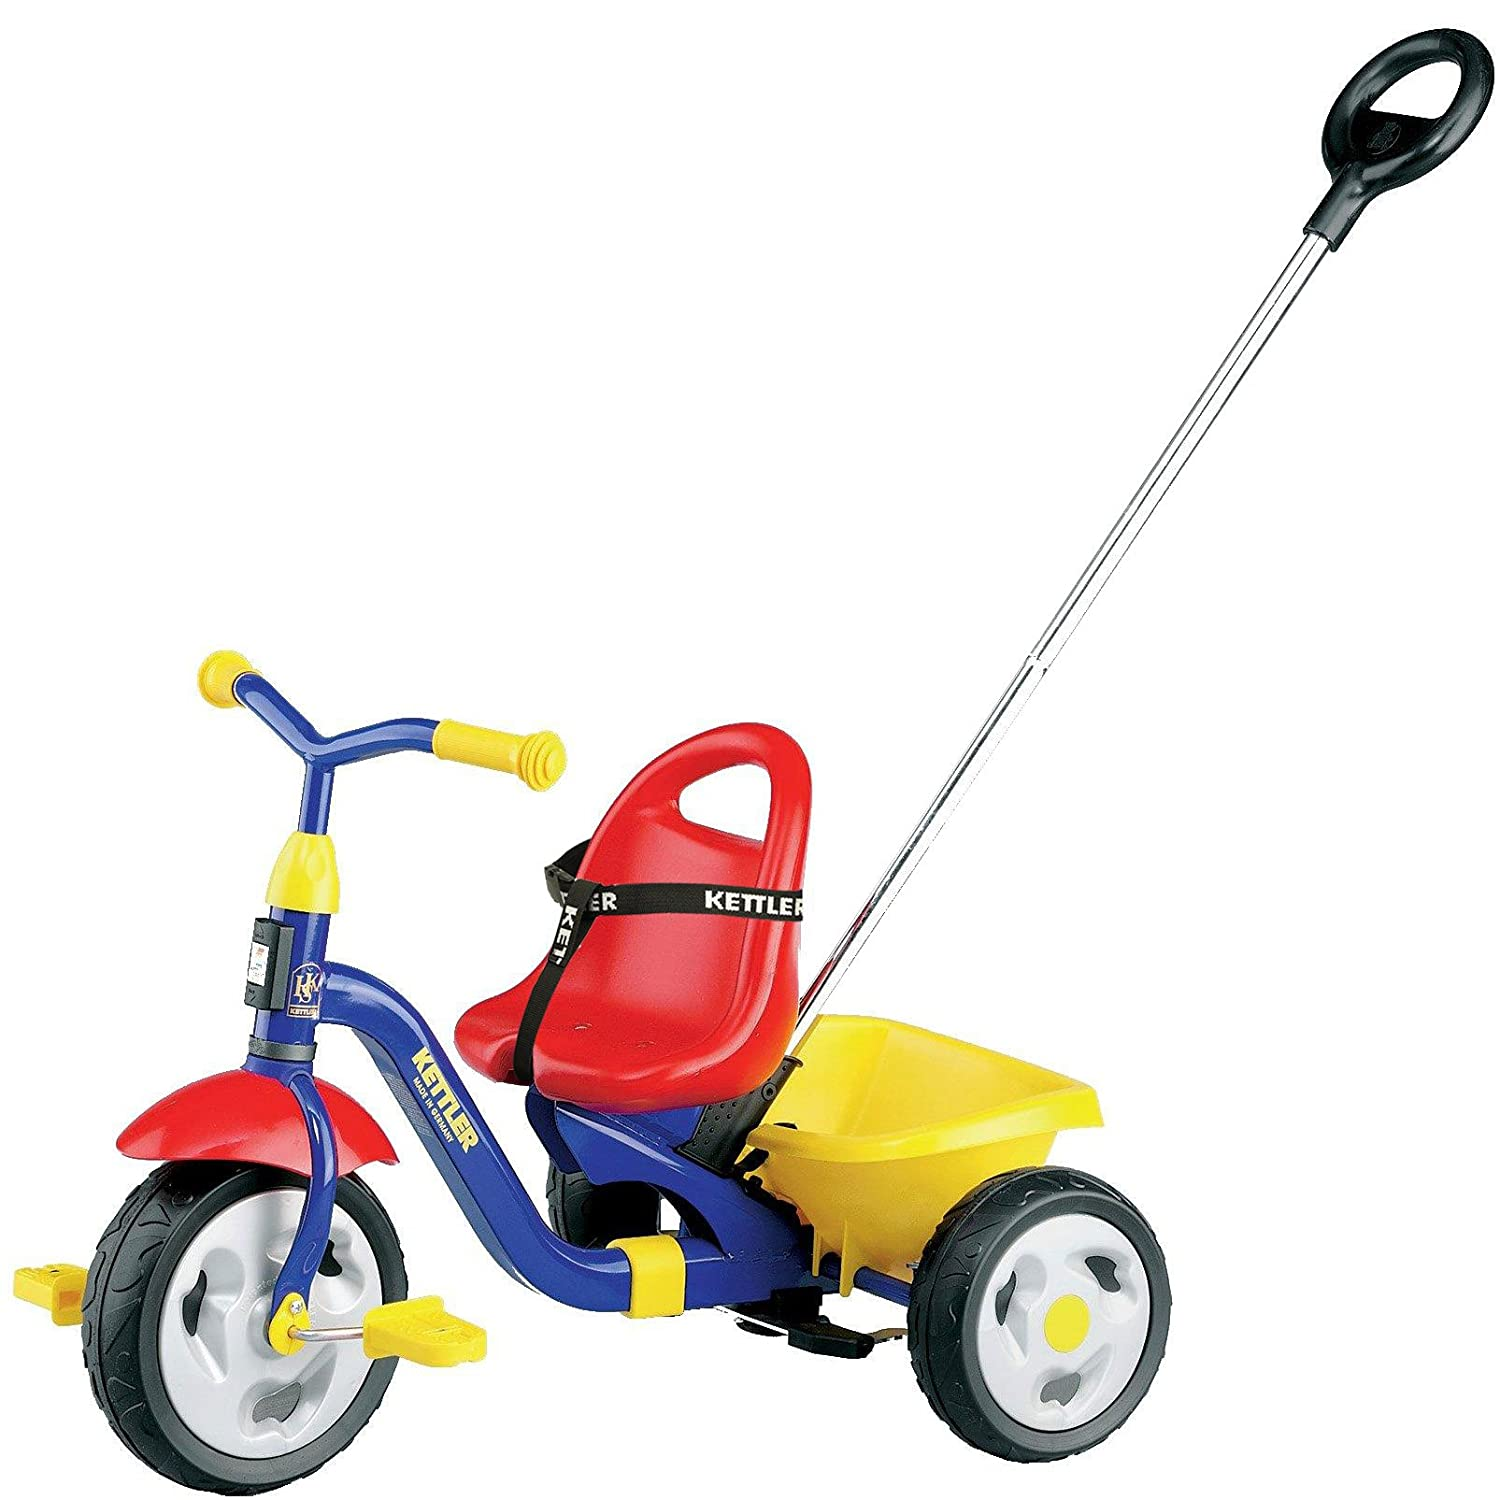 Tricycle With Push Handle Fel7 Com